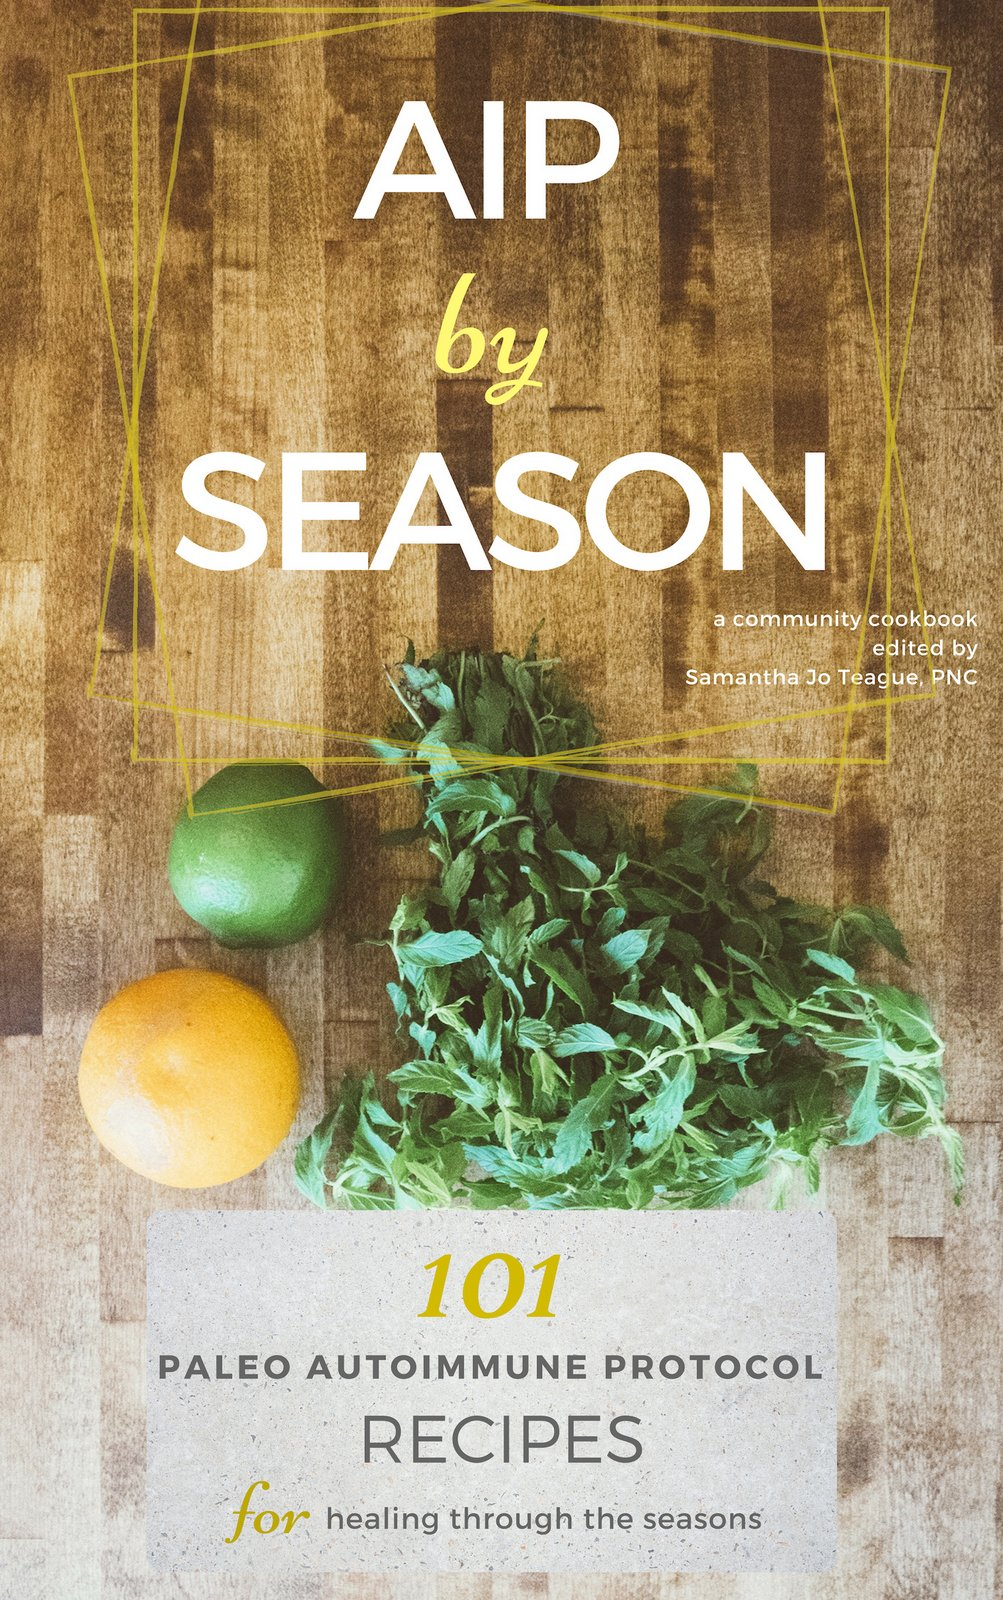 AIP By Season Cookbook Review & Sample Recipe | Phoenix Helix